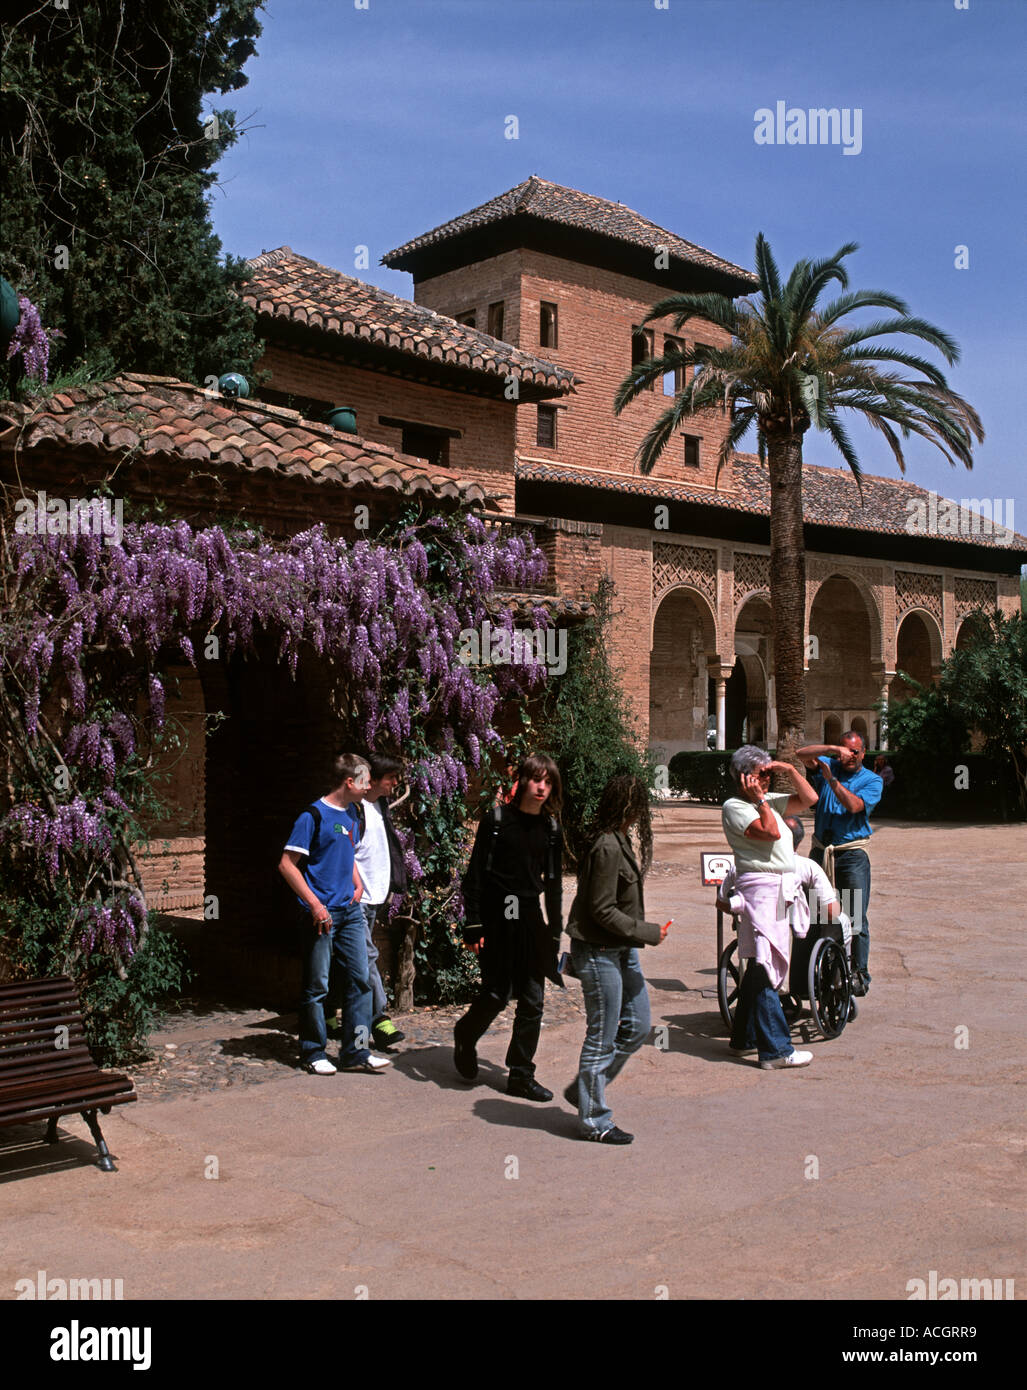 83699ee263b Wisteria and the Tower of the Ladies at the Alhambra Stock Photo ...